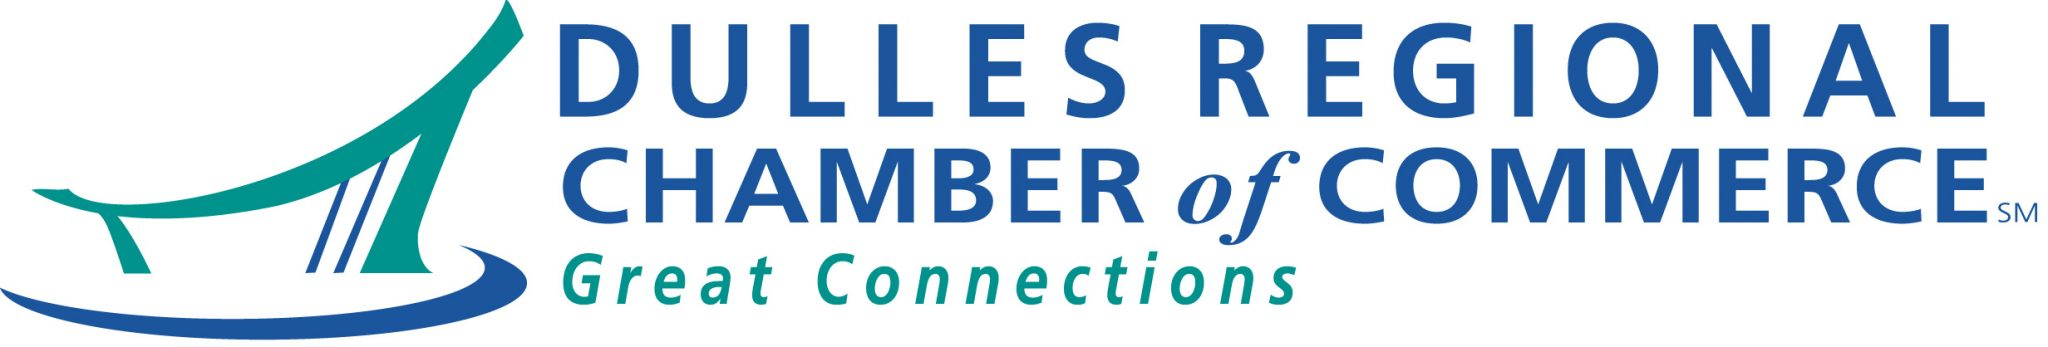 Dulles Chamber of Commerce logo